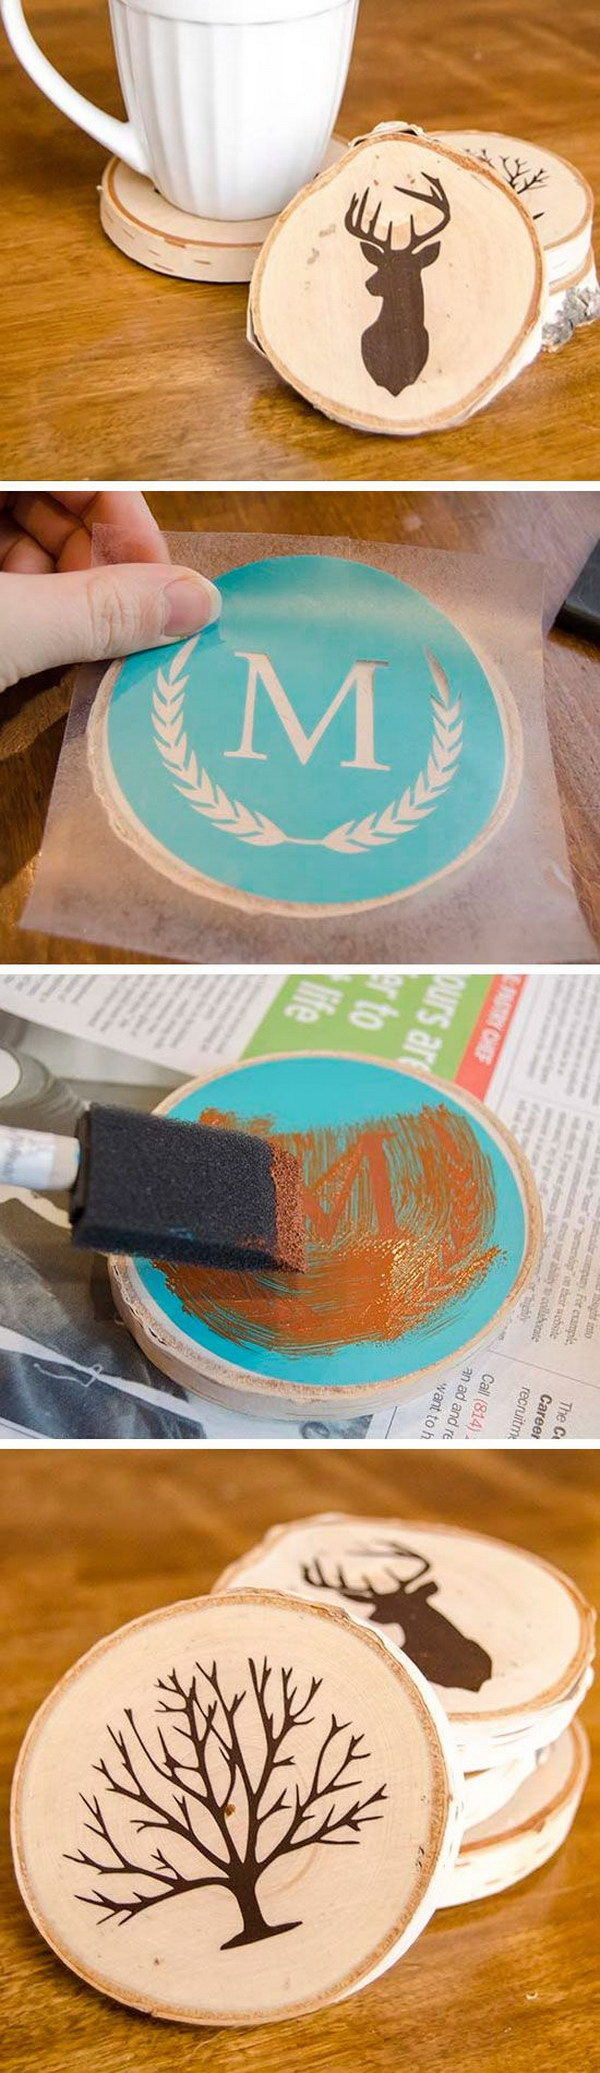 DIY Painted Wood Slice Coasters.